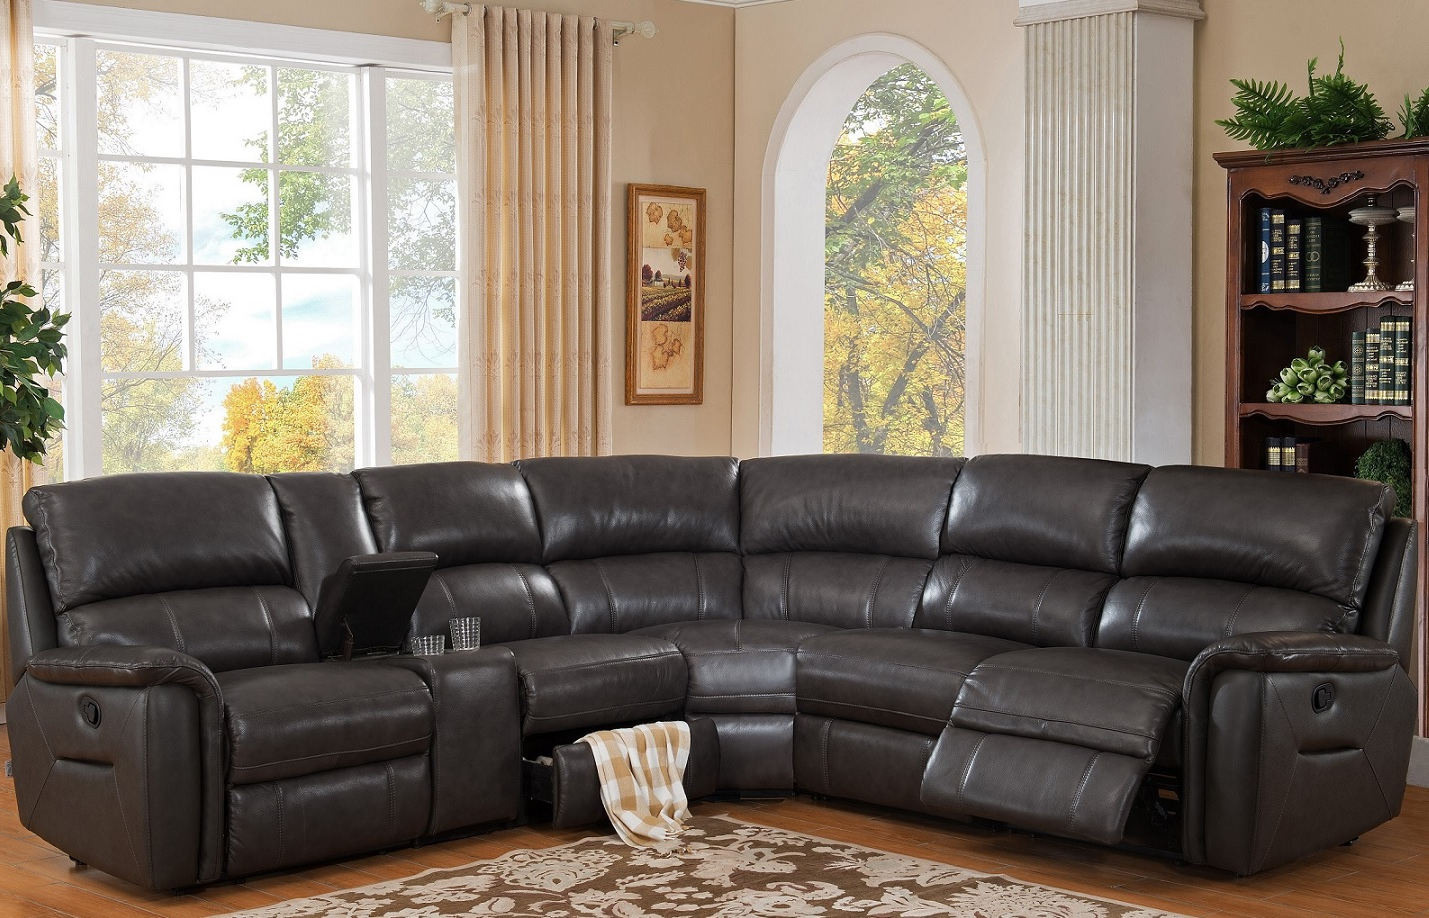 Sofas In Burton Leather 3 Piece Sectionals (View 7 of 20)